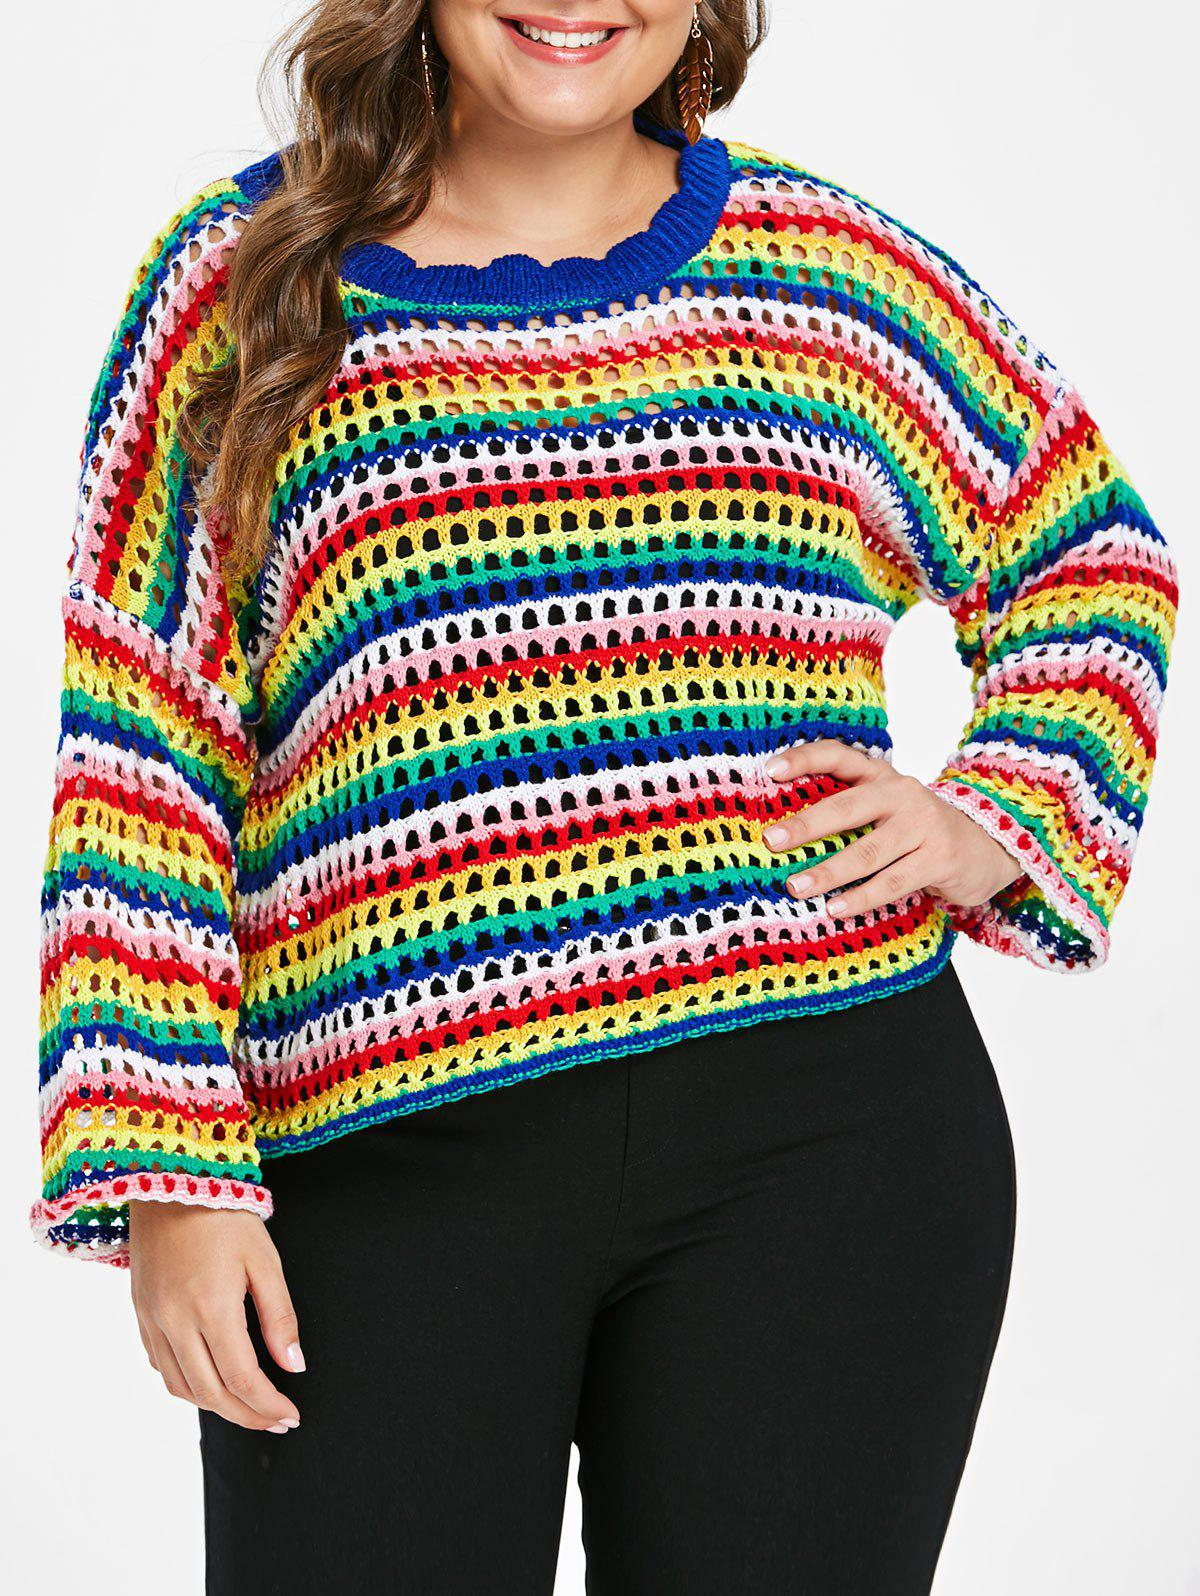 Plus Size Rainbow Color Sweater